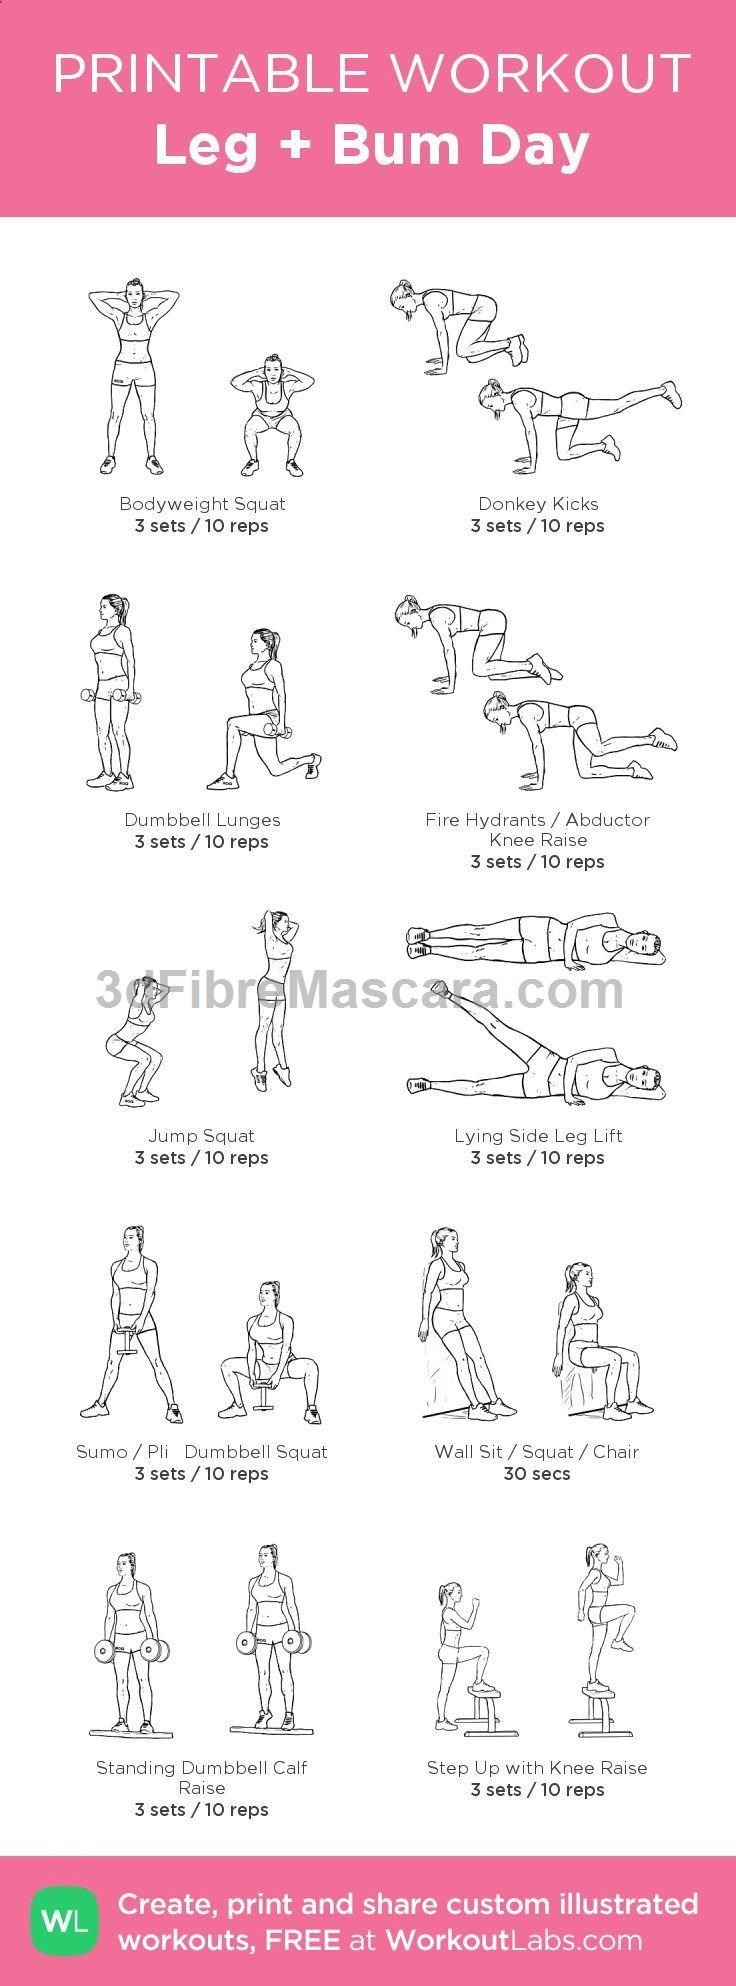 Leg   Bum Day Workout #fitspiration | Health & Fitness | Pinterest | Workout Exercises, Legs and Workout #diet #dieting #lowcalories #dietplan #excercise #diabetic #diabetes #slimming #weightloss #loseweight #loseweightfast